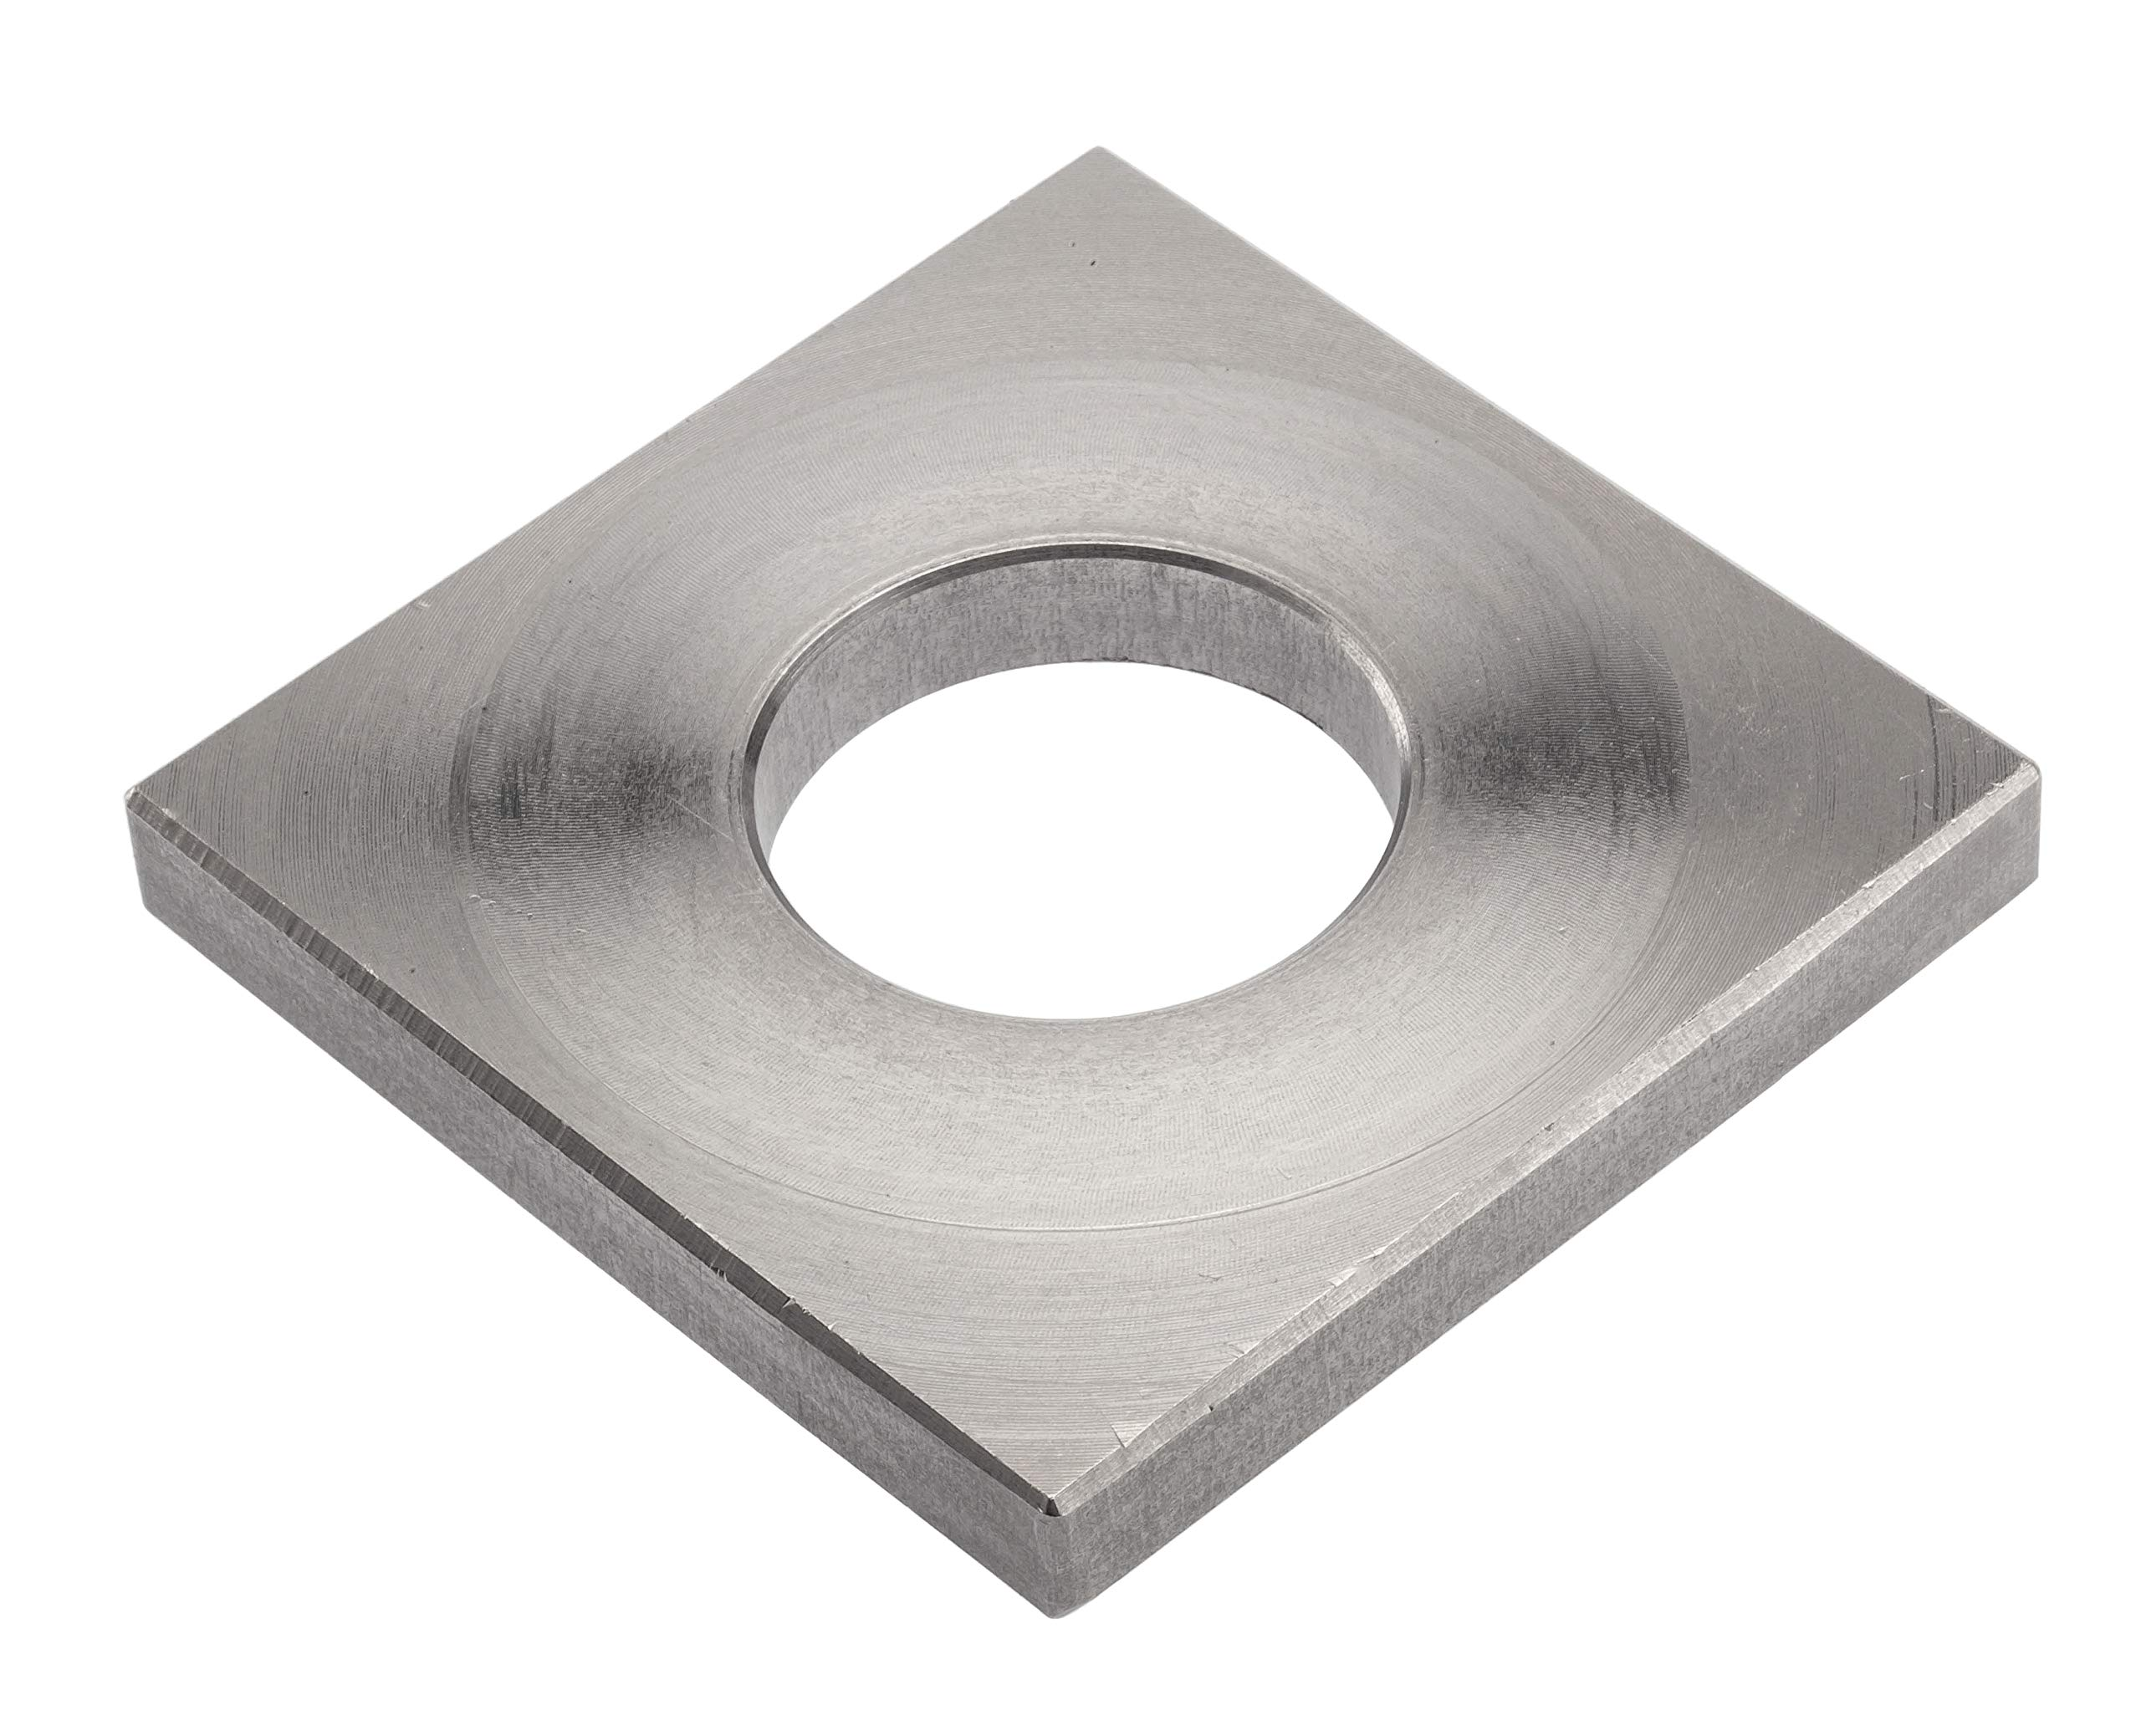 AMPG Z8782-188 Square Washer, Stainless